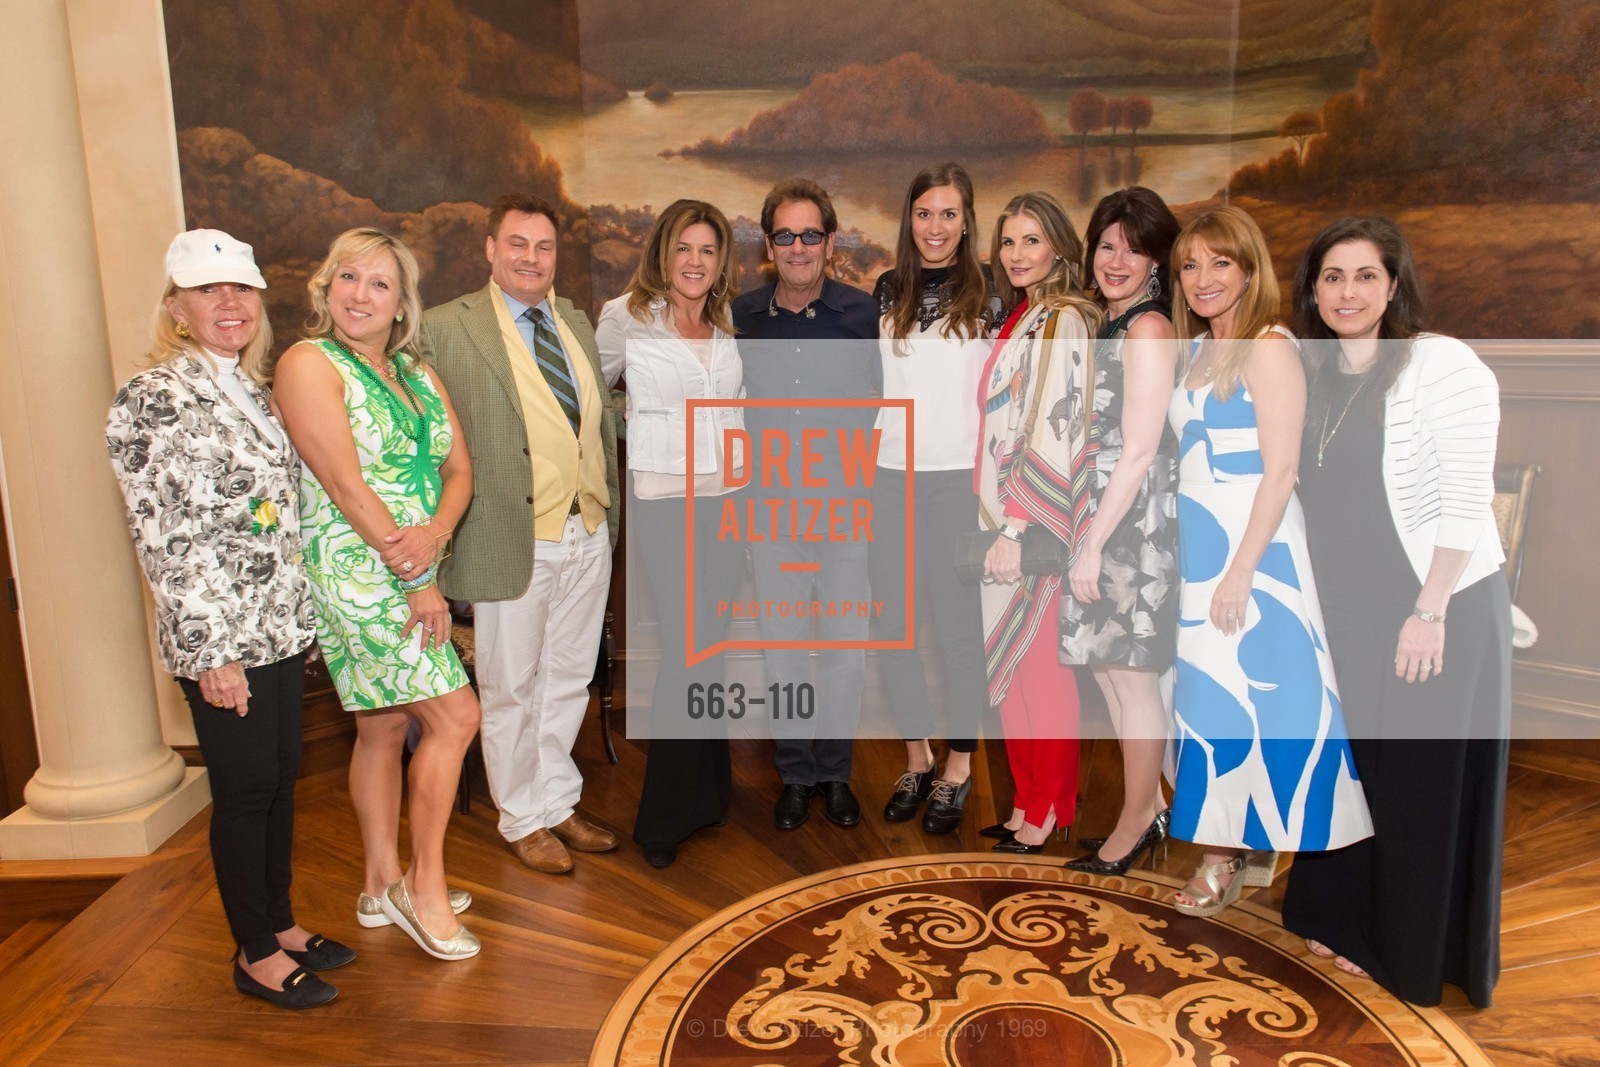 Elsie Floriani, Princess Julia Shaw, Huey Lewis, Elaine Mellis, Jane Seymour, LYME AID 2015 Benefiting the Bay Area Lyme Foundation, Private Residence, May 16th, 2015,Drew Altizer, Drew Altizer Photography, full-service agency, private events, San Francisco photographer, photographer california